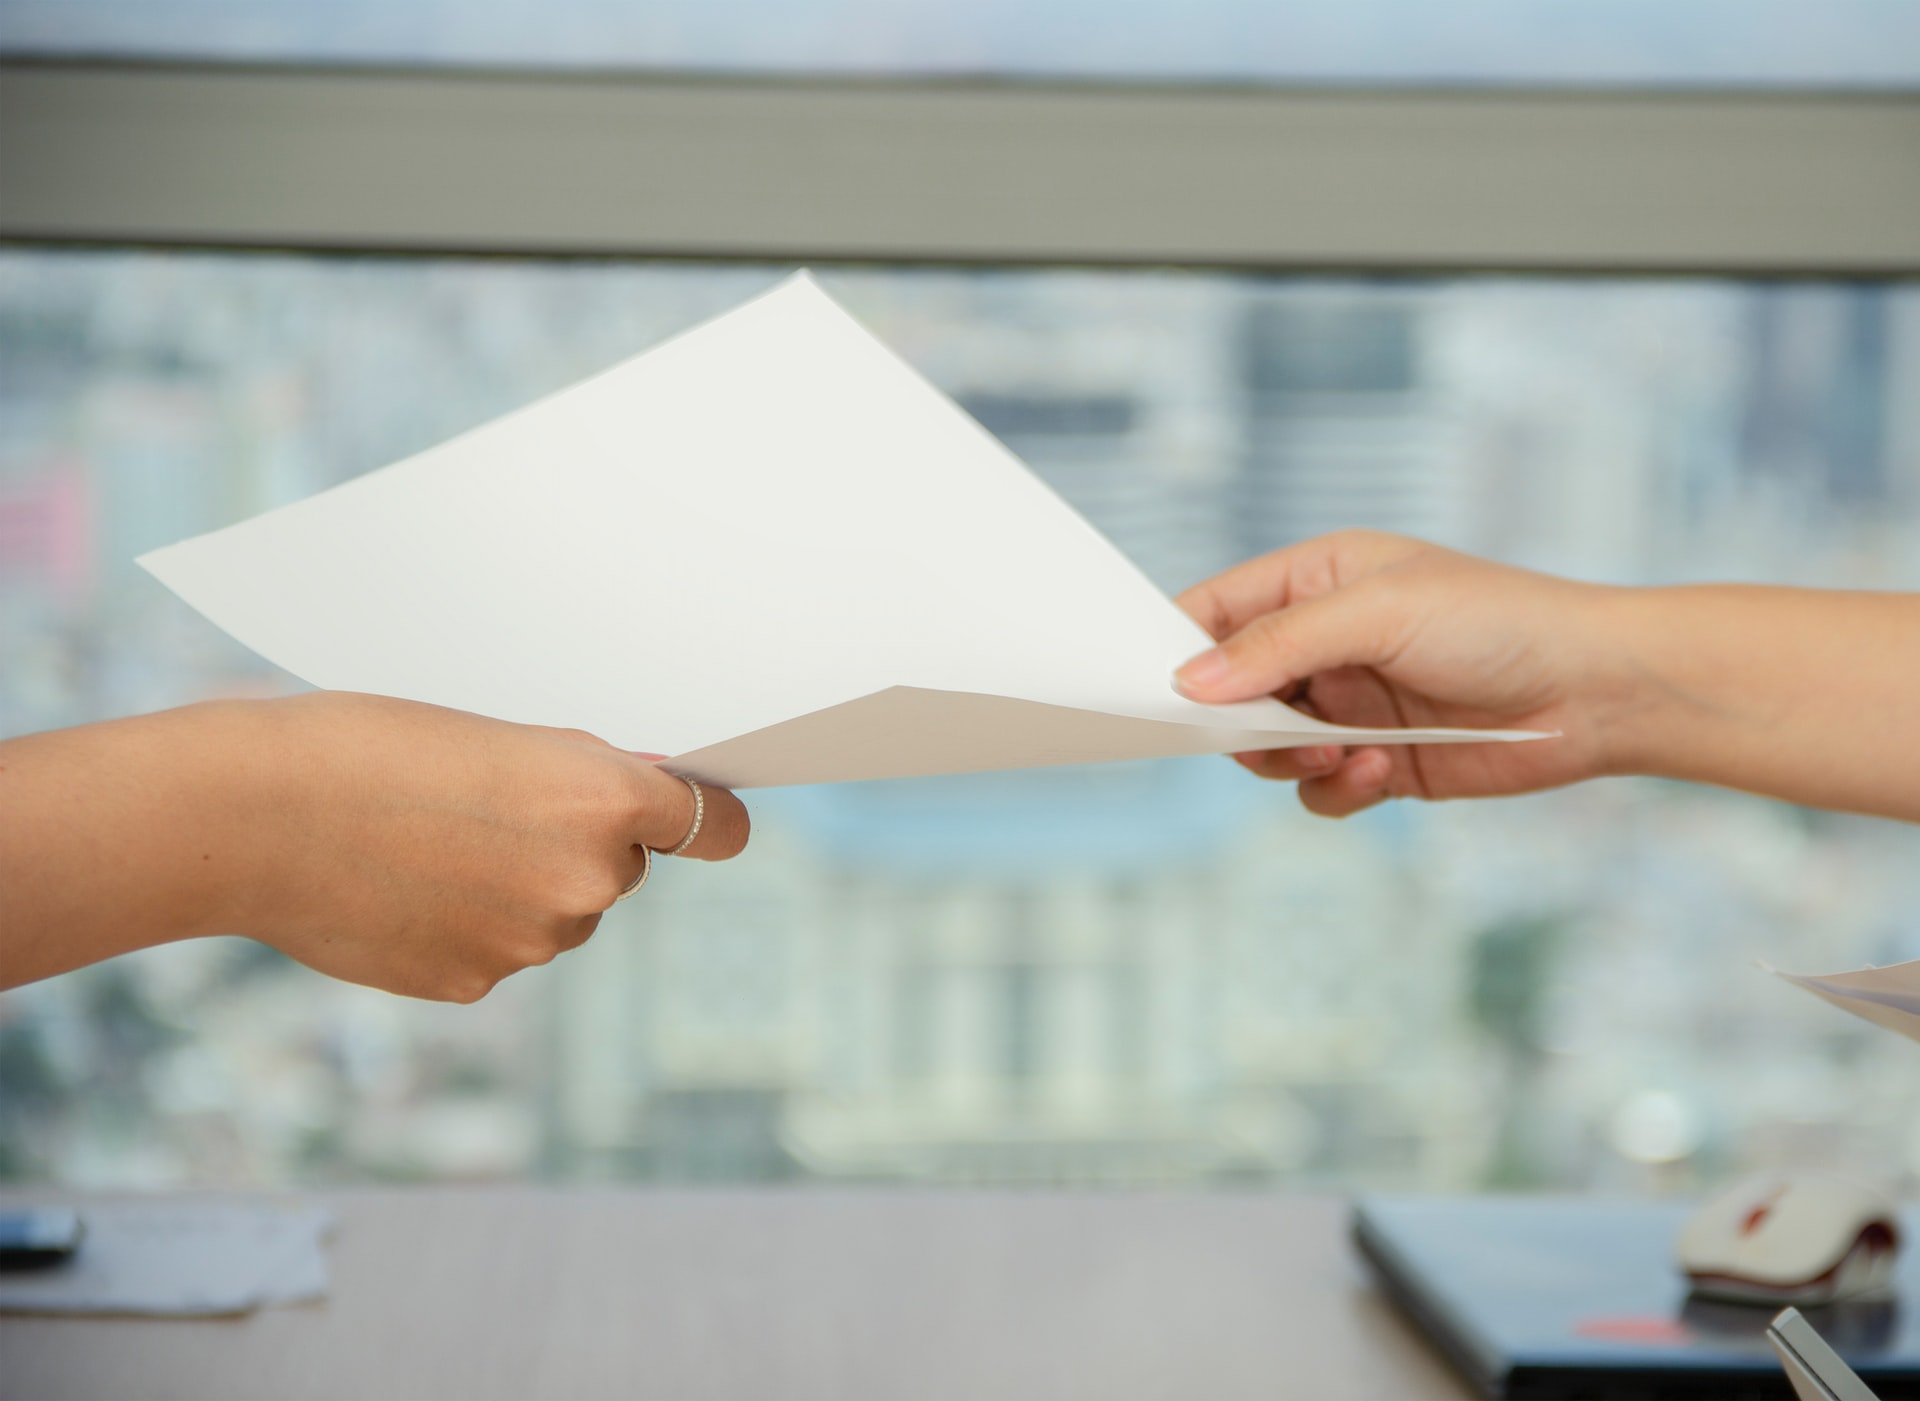 Photo of two females' hands holding a blank piece of paper